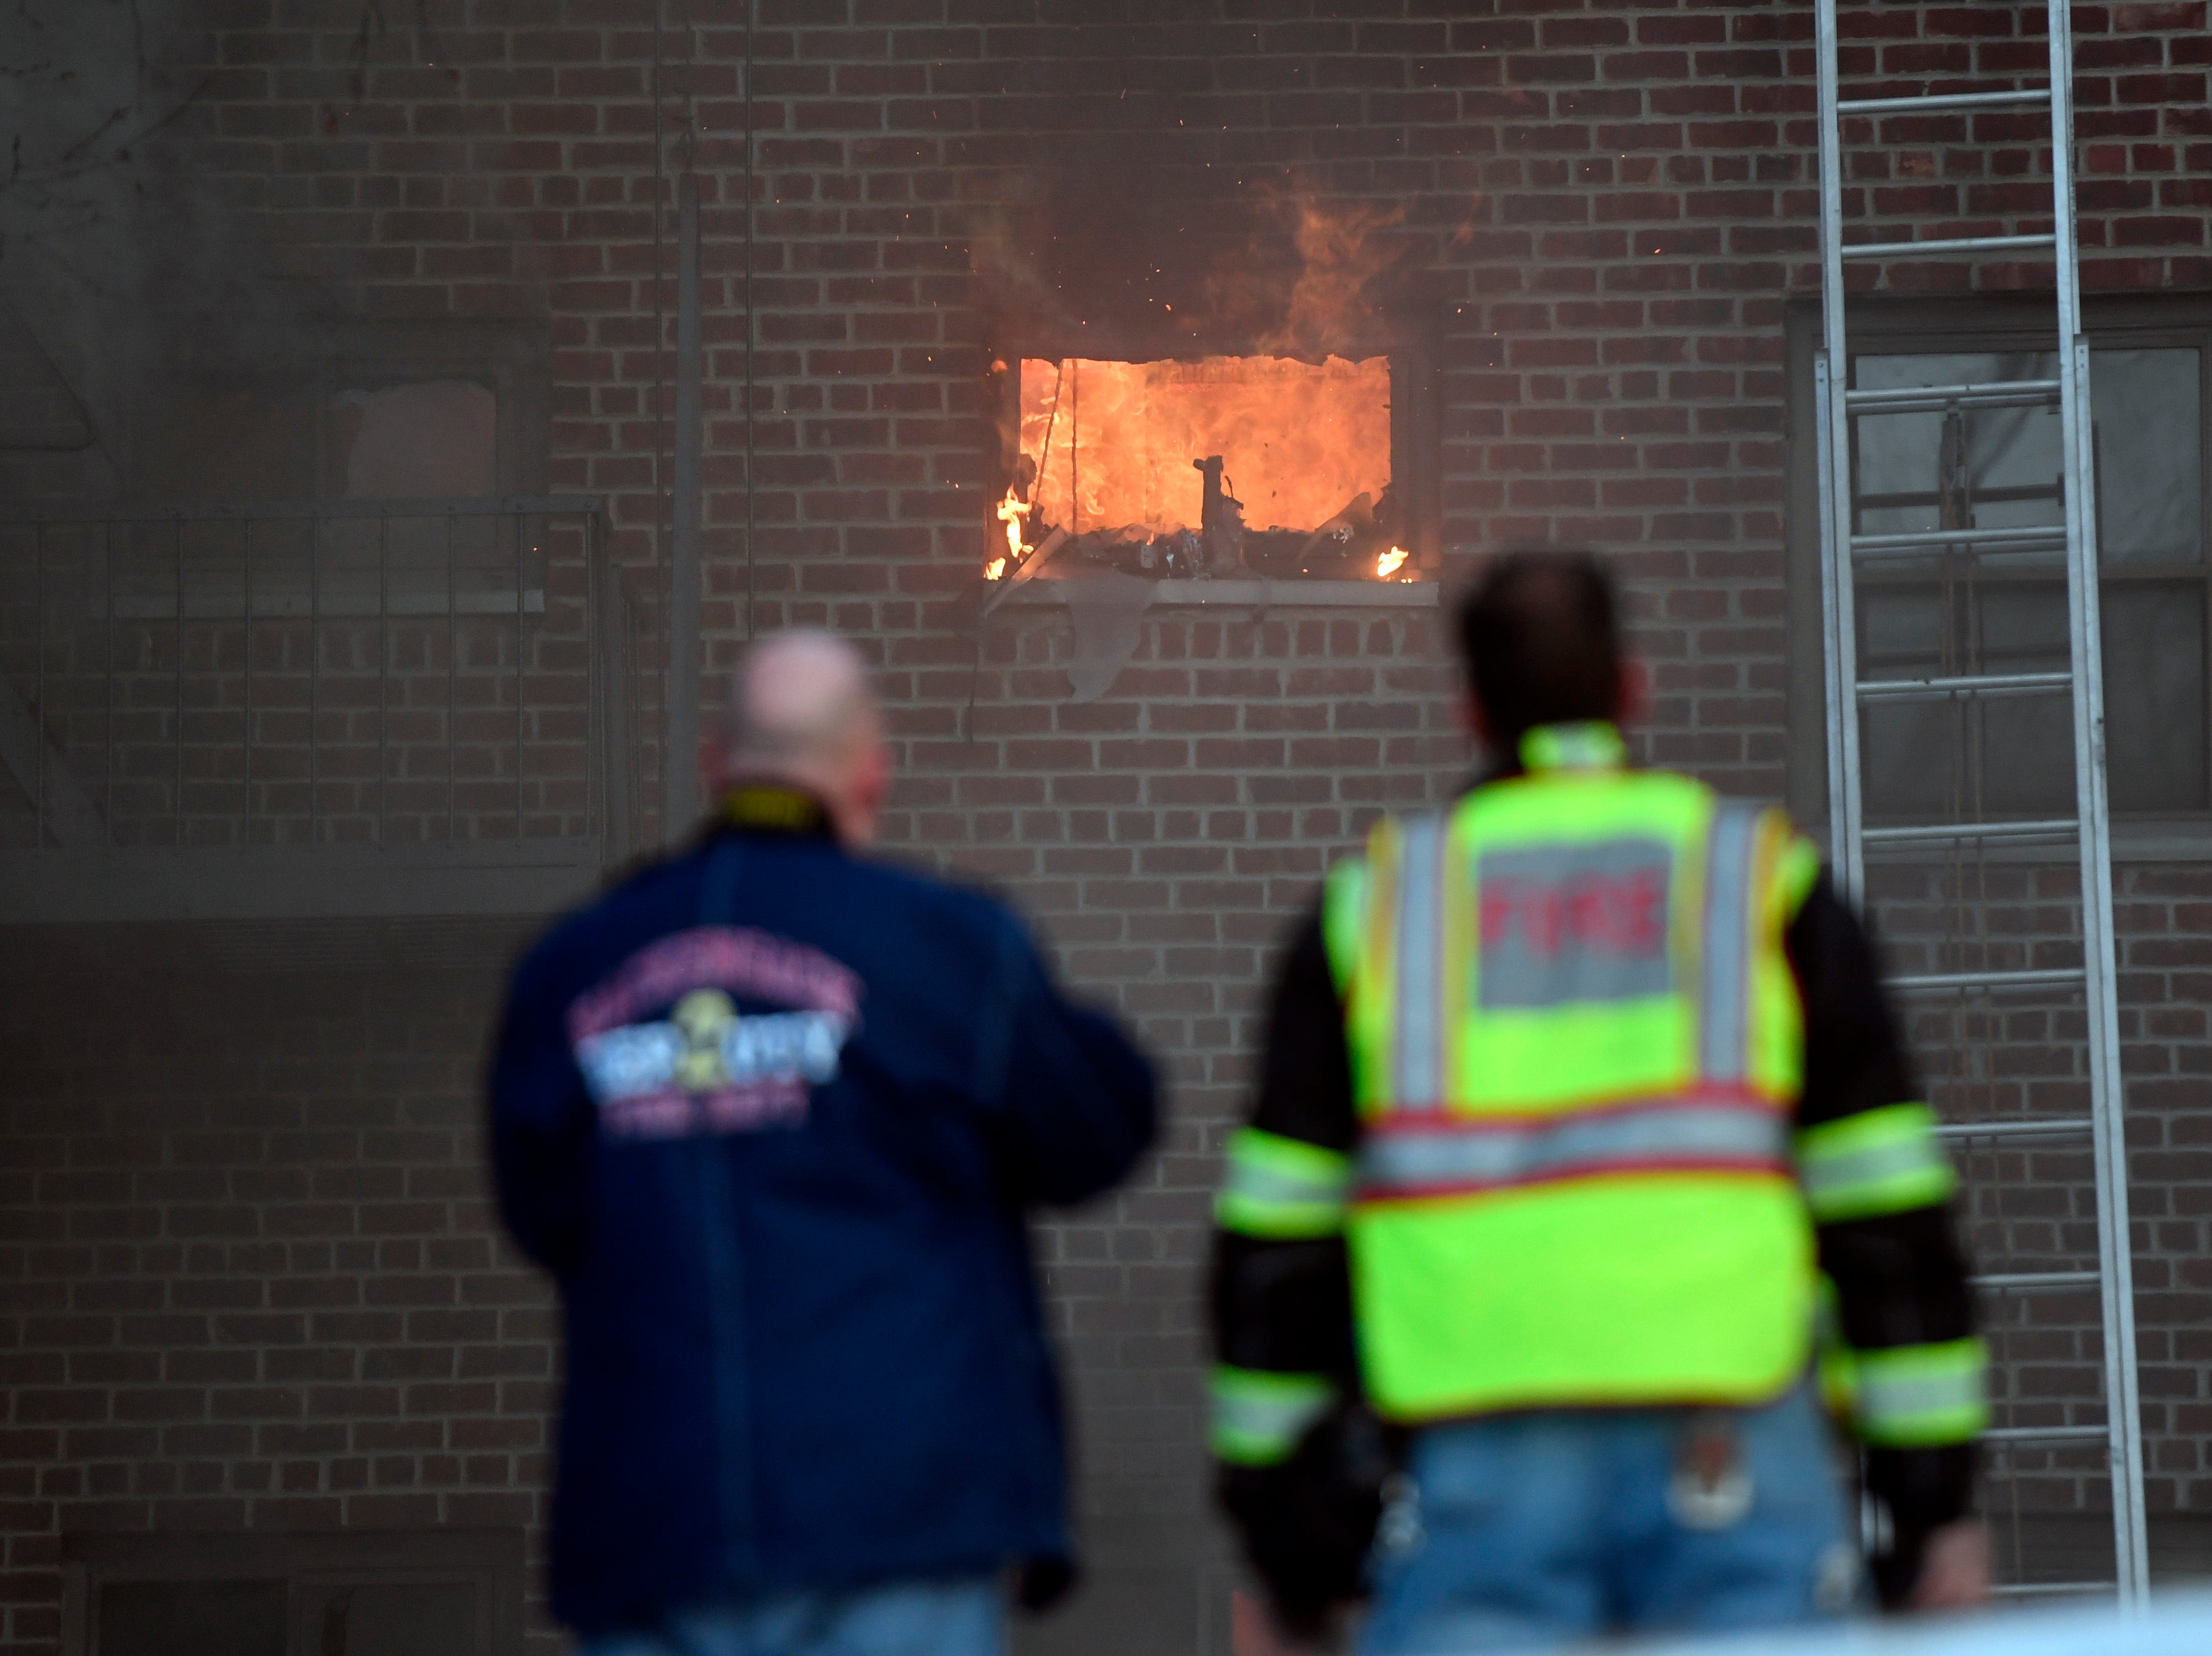 Emergency personnel look on as a fire rages within an apartment building on Edwin avenue in Fort Lee on Thursday, Feb. 14, 2019.